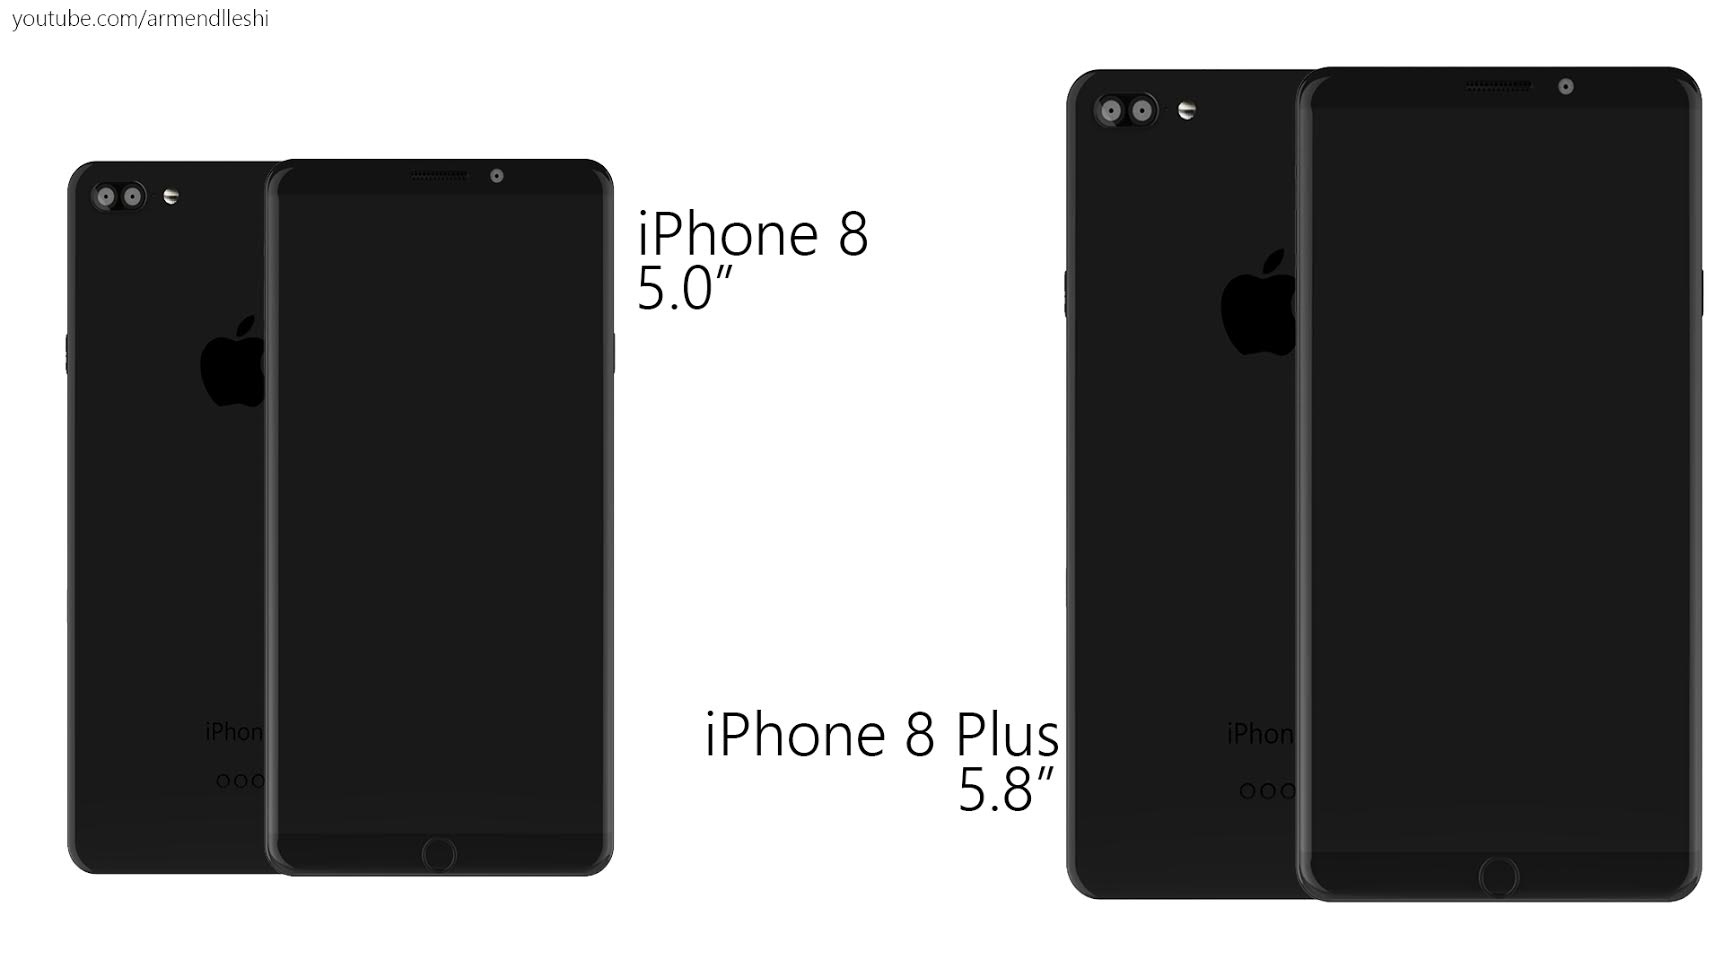 A Fingerprint Scanner Has Been Included Plus Everything Fits Into The Same Body As IPhone 7 And 6s In Spite Of Bigger Screen